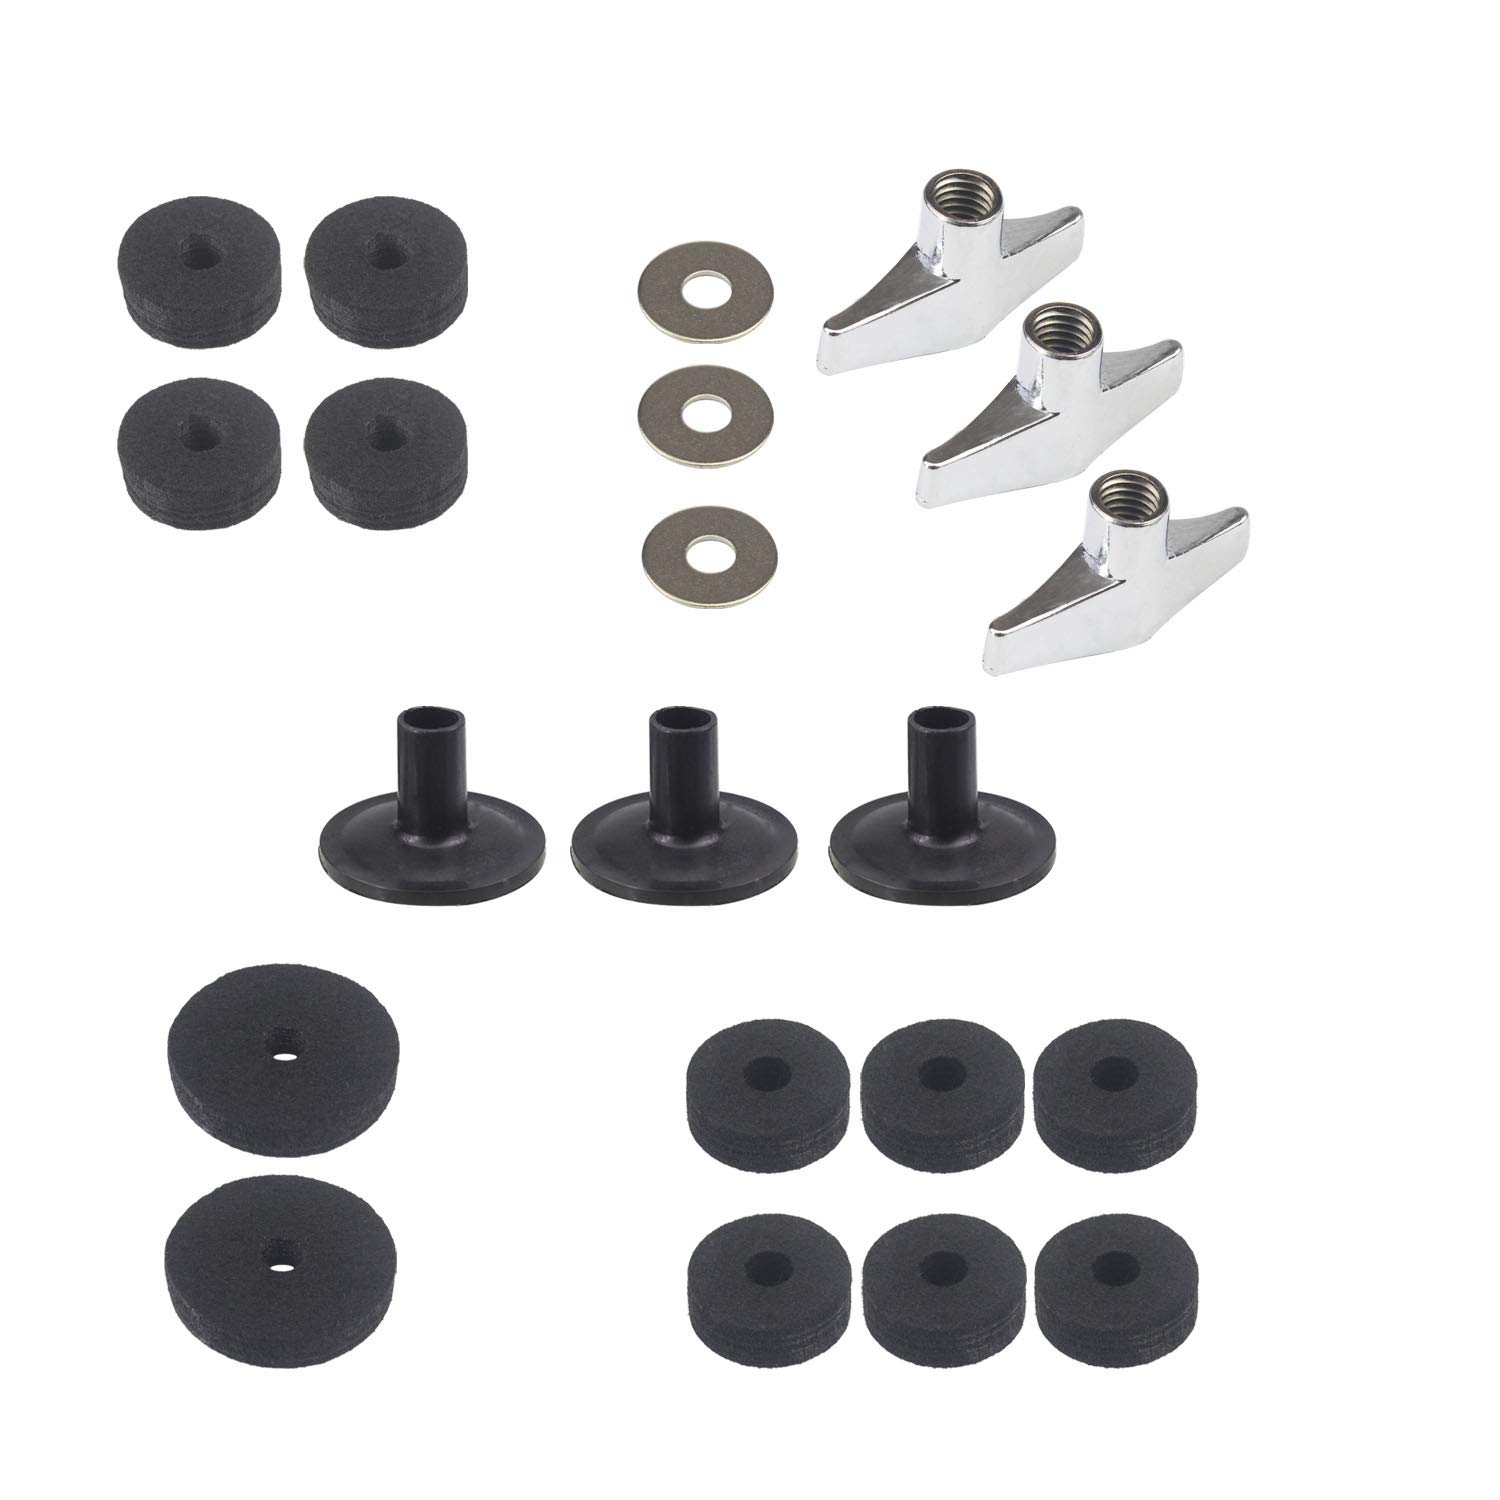 WeiMeet Cymbal Accessories Cymbal Stand Sleeves Cymbal Felts Drum Set Accessories with Cymbal Washer and Base Wing Nuts(21 Pieces)